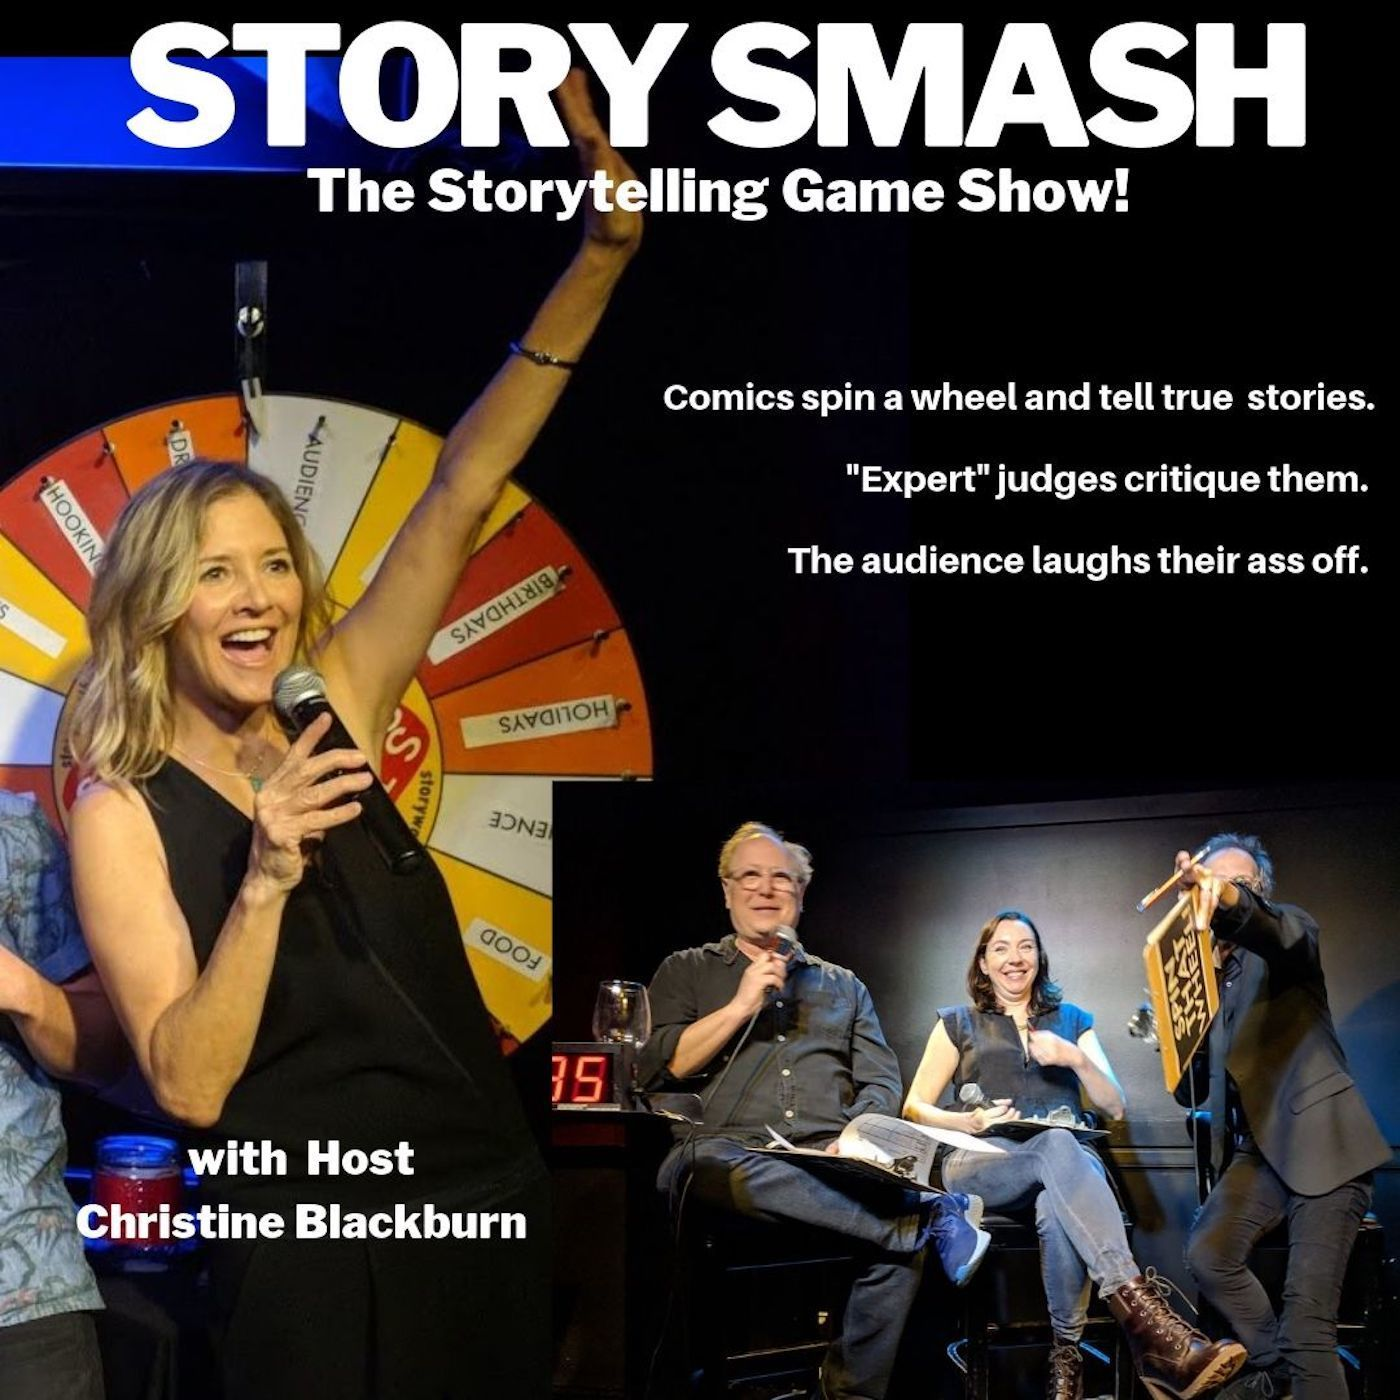 590 - Story Smash the Storytelling Gameshow LIVE at The Hollywood Improv!